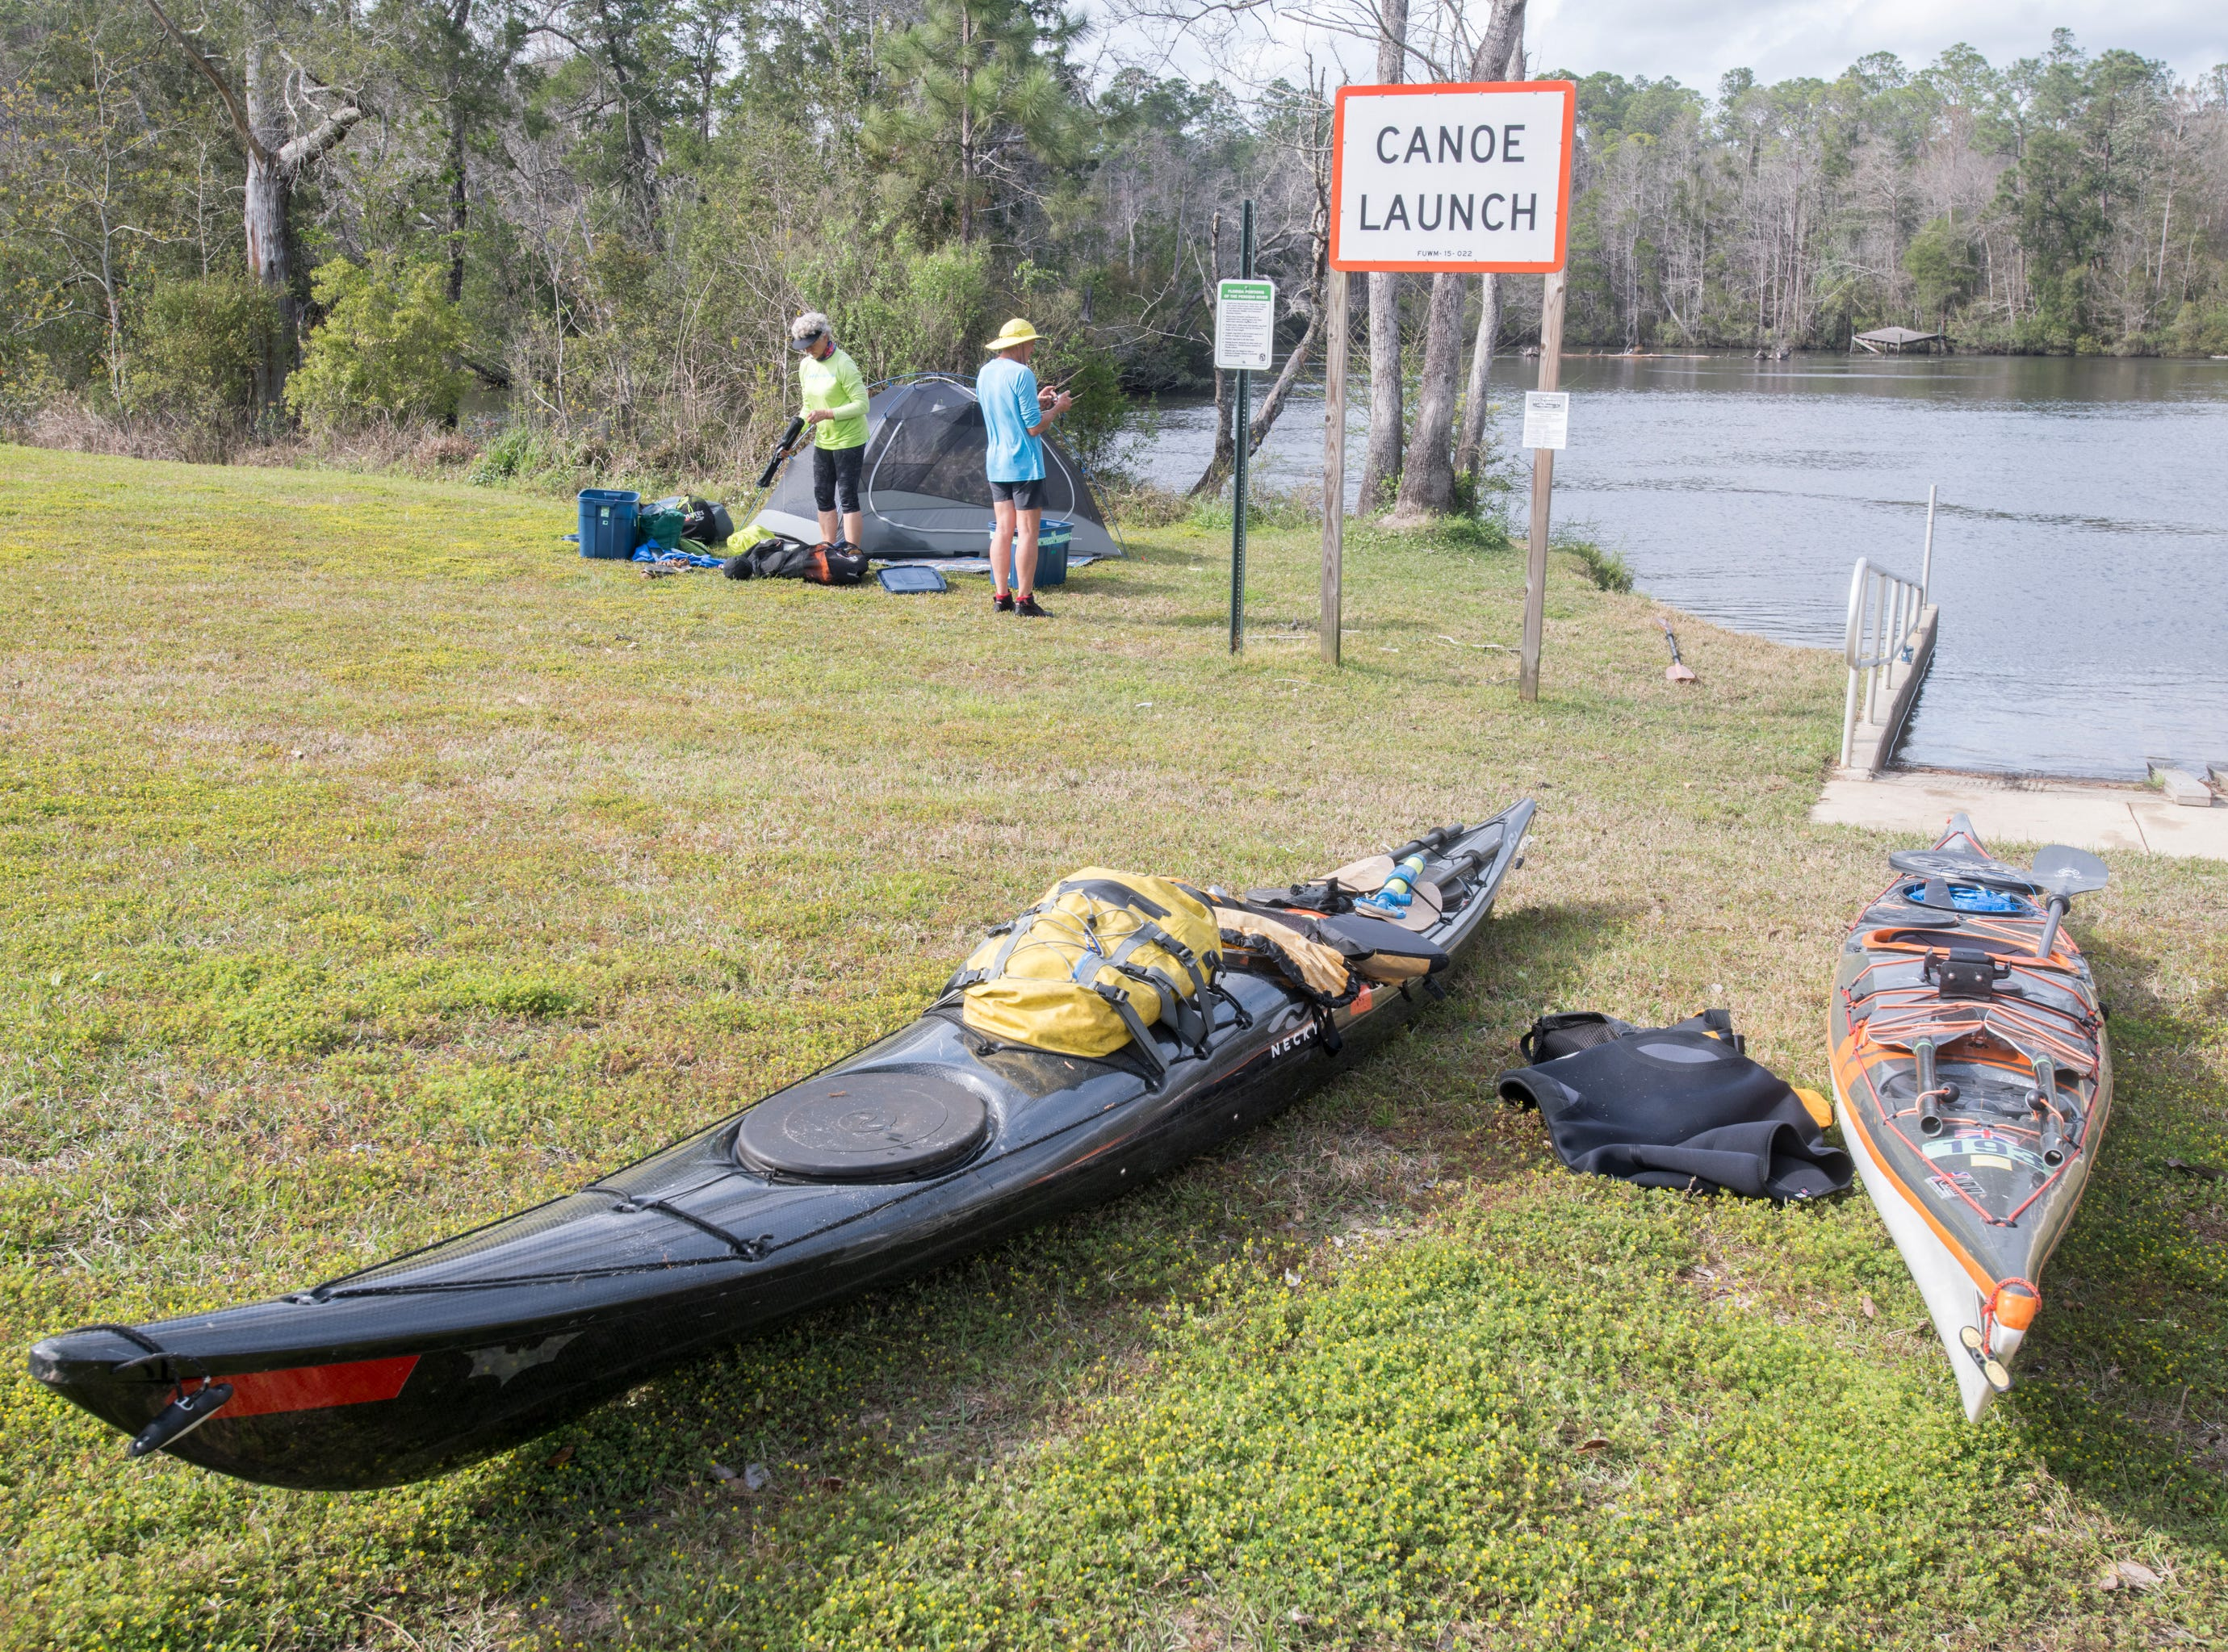 Debbie and Paul Gelderblom, of Charlevoix, Michigan, set up camp at the Wilson Robertson Boat Ramp on the Perdido River in Pensacola on Monday, March 11, 2019.  Paddle Florida is hosting 60 paddlers on a 5-day, 60-mile journey from Otto Hill to Perdido Pass.  Florida is currently working with Alabama to establish a paddling trail on the Perdido River.